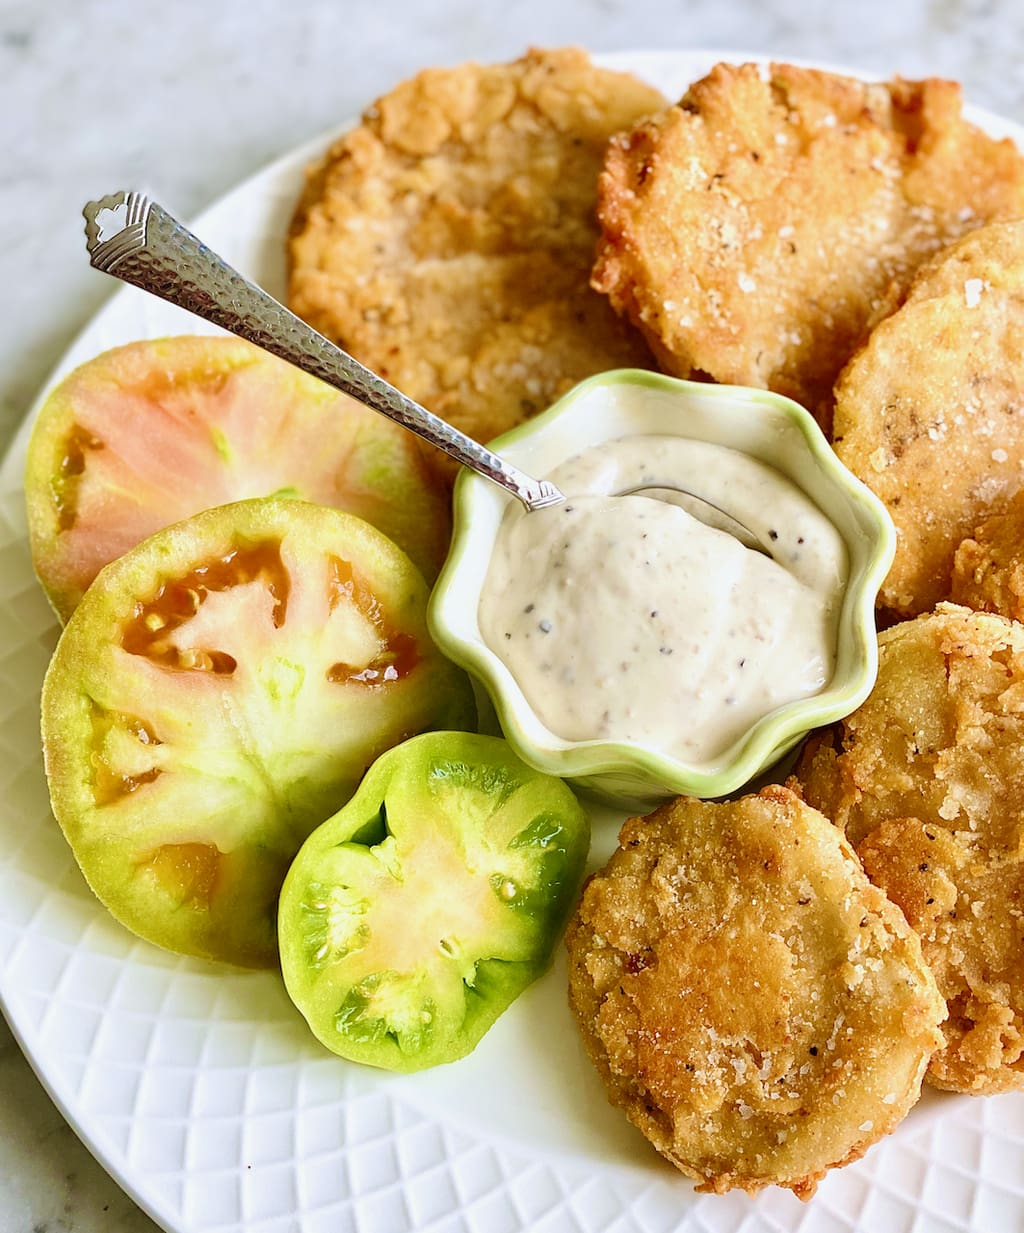 fried green tomatoes in a circular pattern with ranch dip in the middle